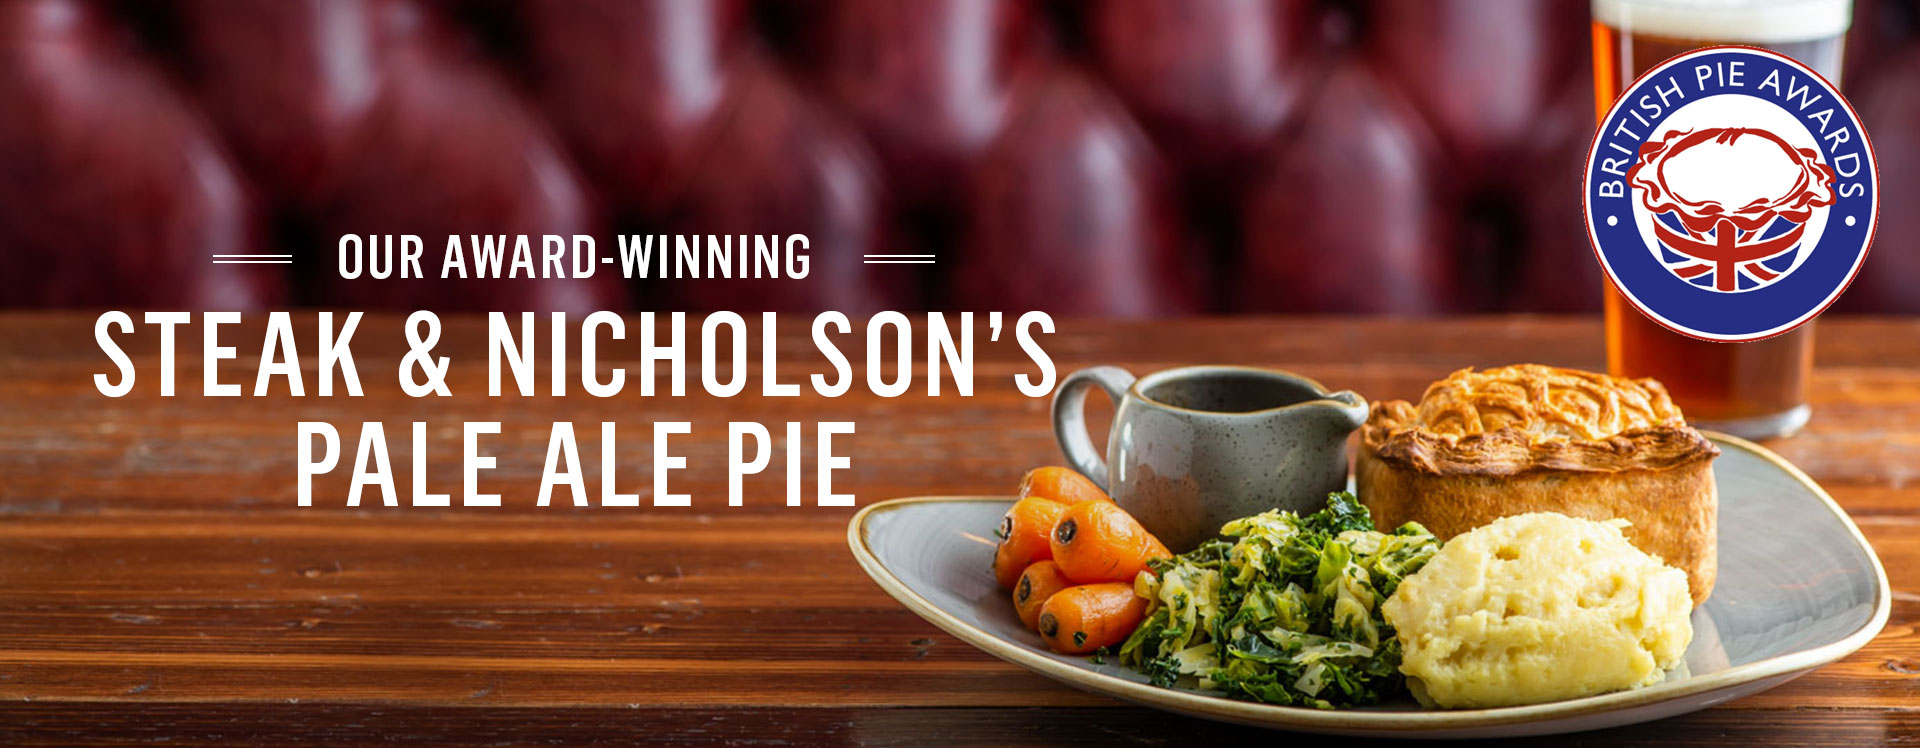 Award Winning Pies at The Eagle and Child